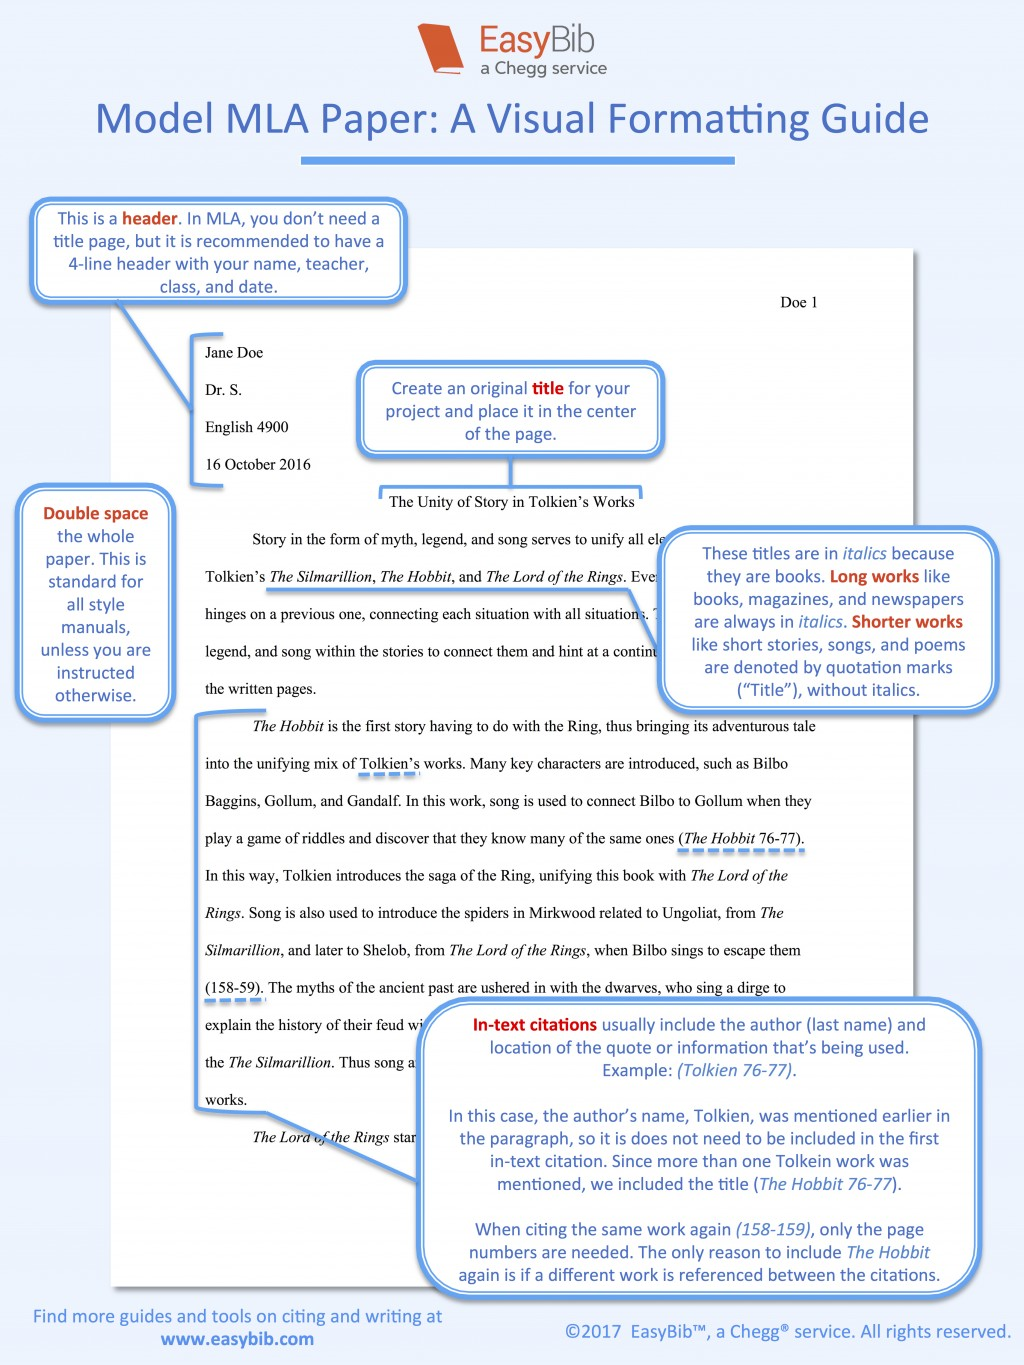 008 Model Mla Paper How To Cite Research In Format Imposing A Example Large